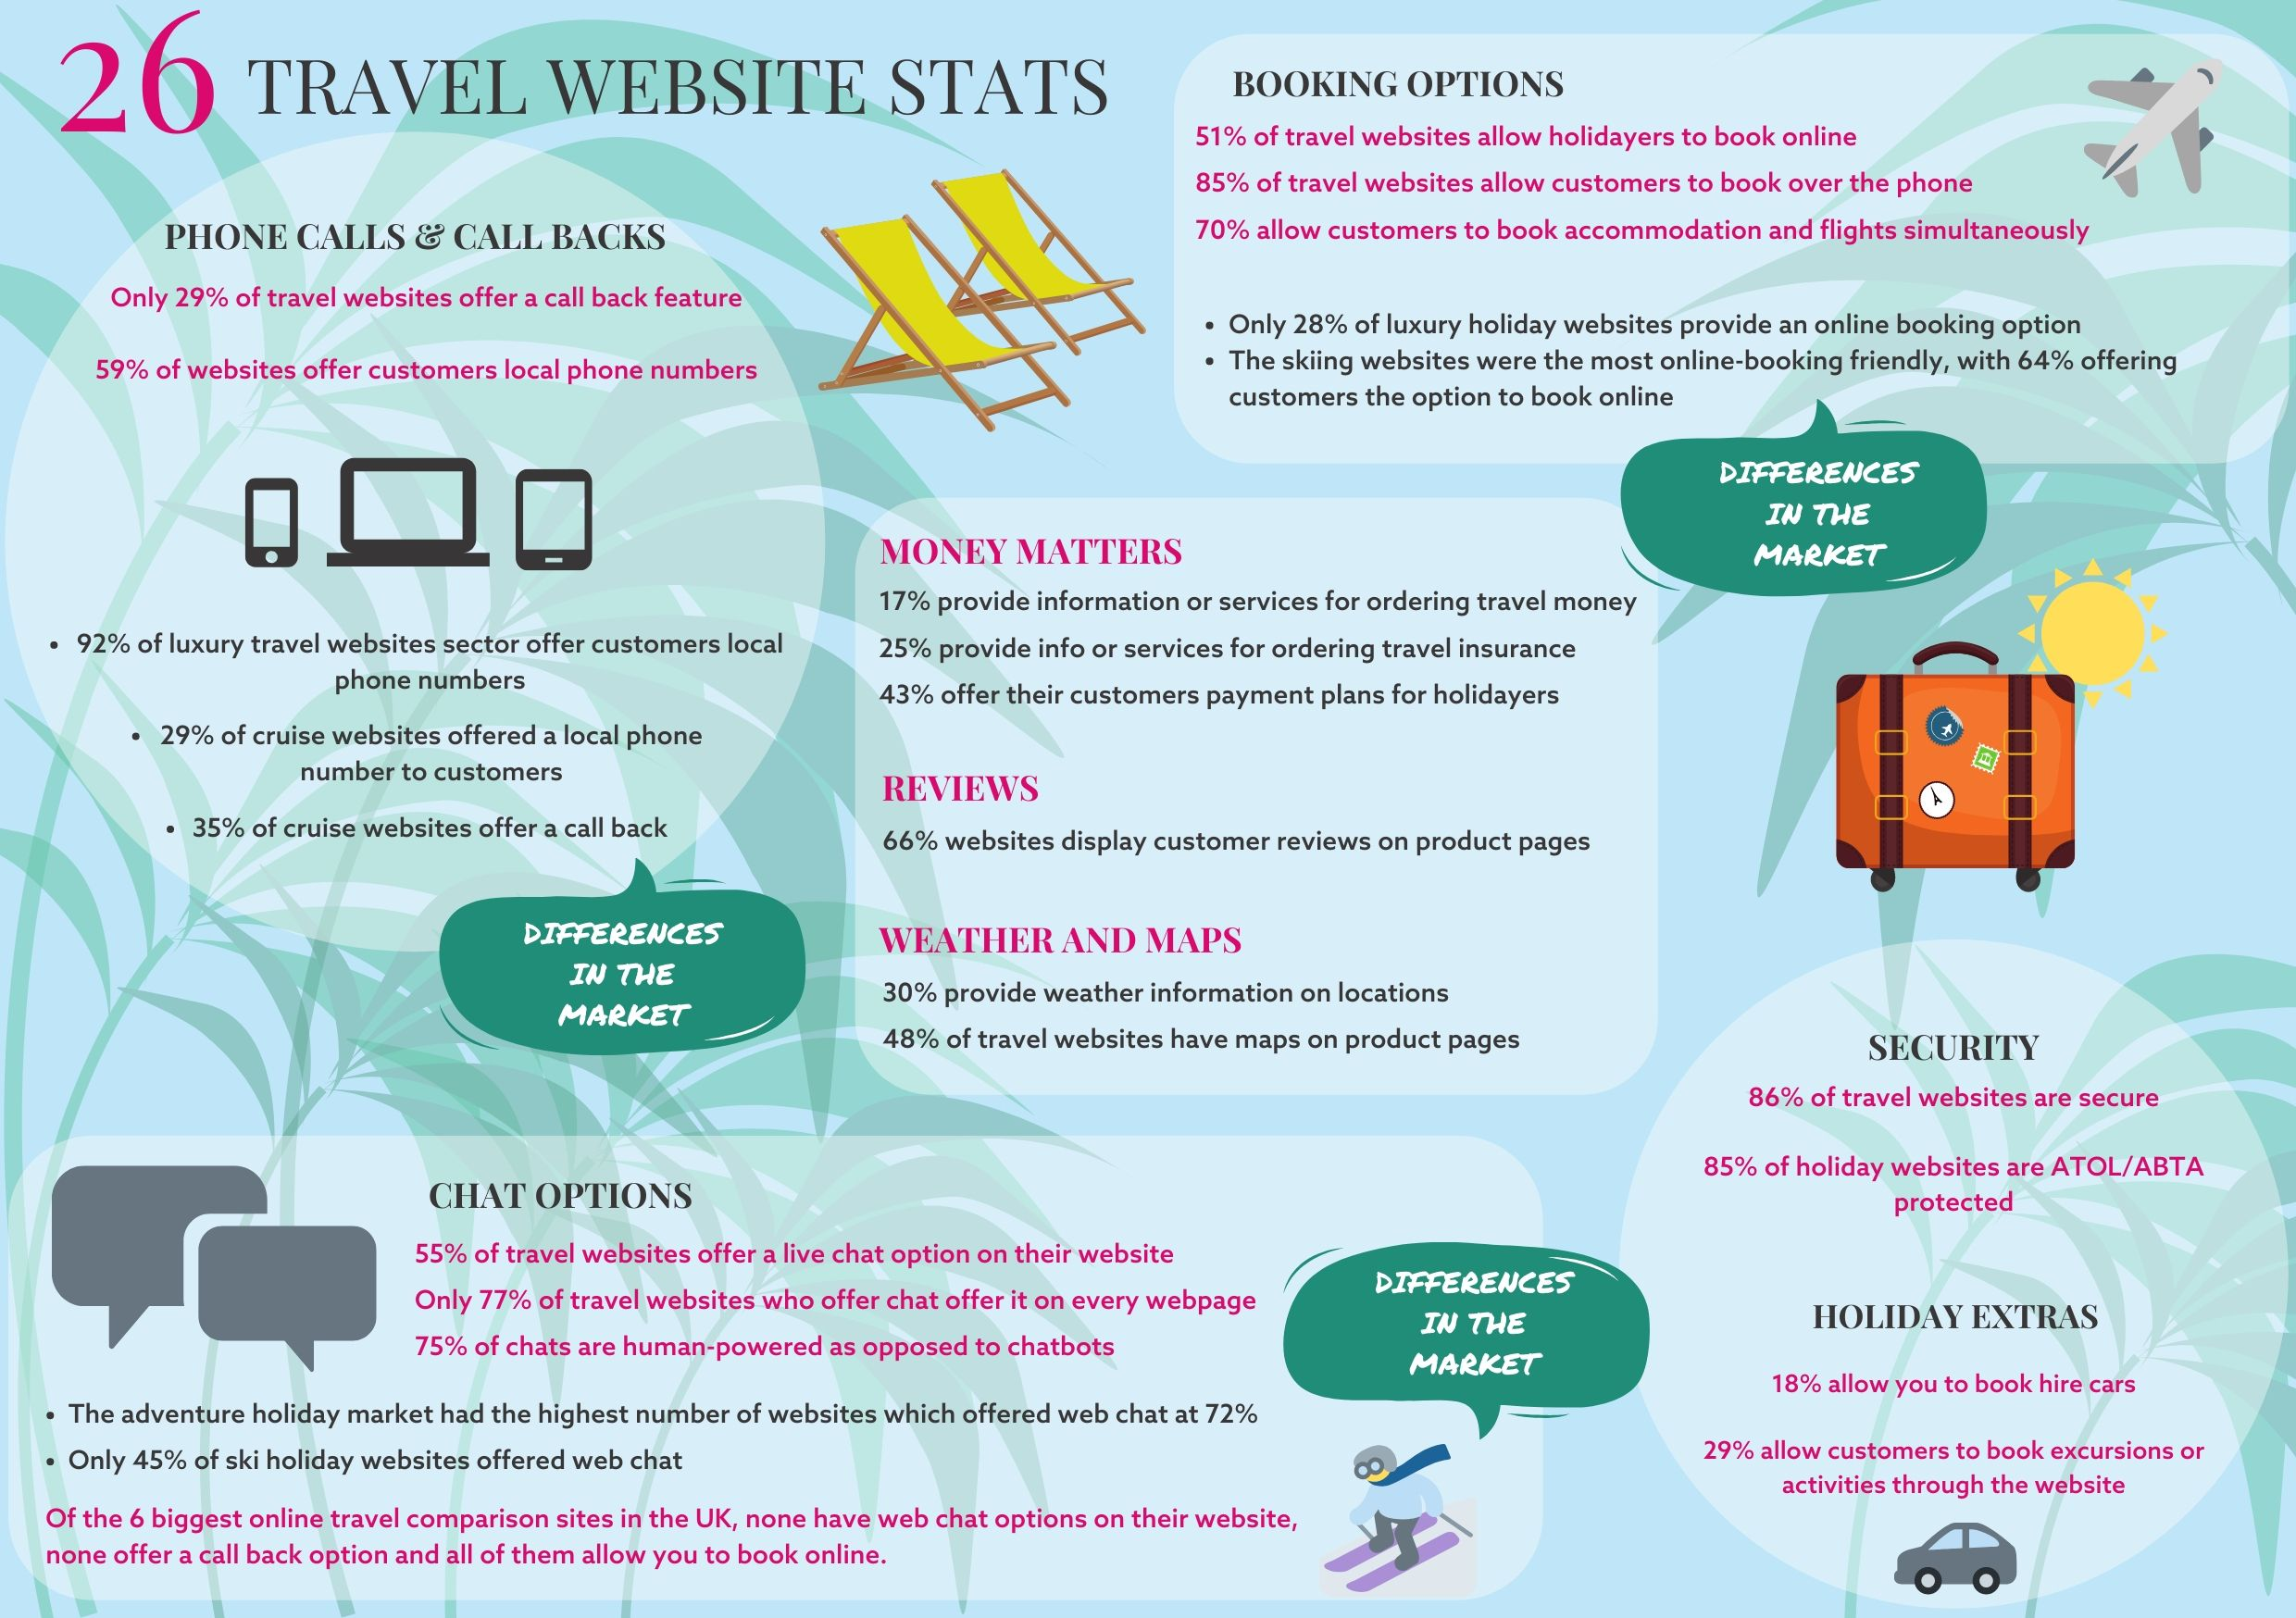 Travel website stats infographic